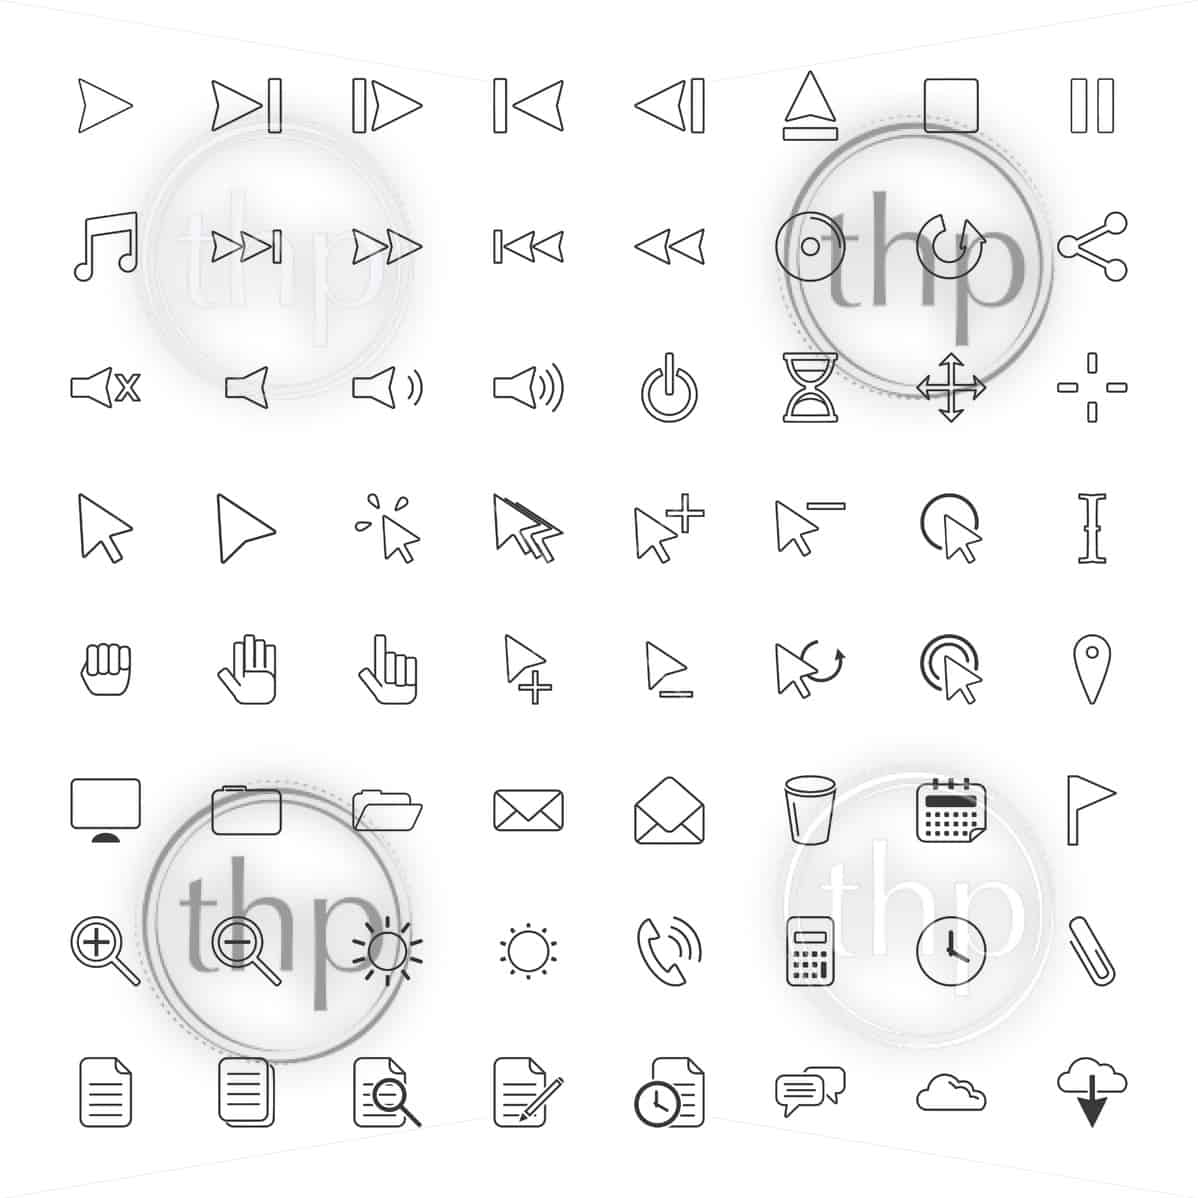 User interface icon set for many computer related actions in vector line drawings